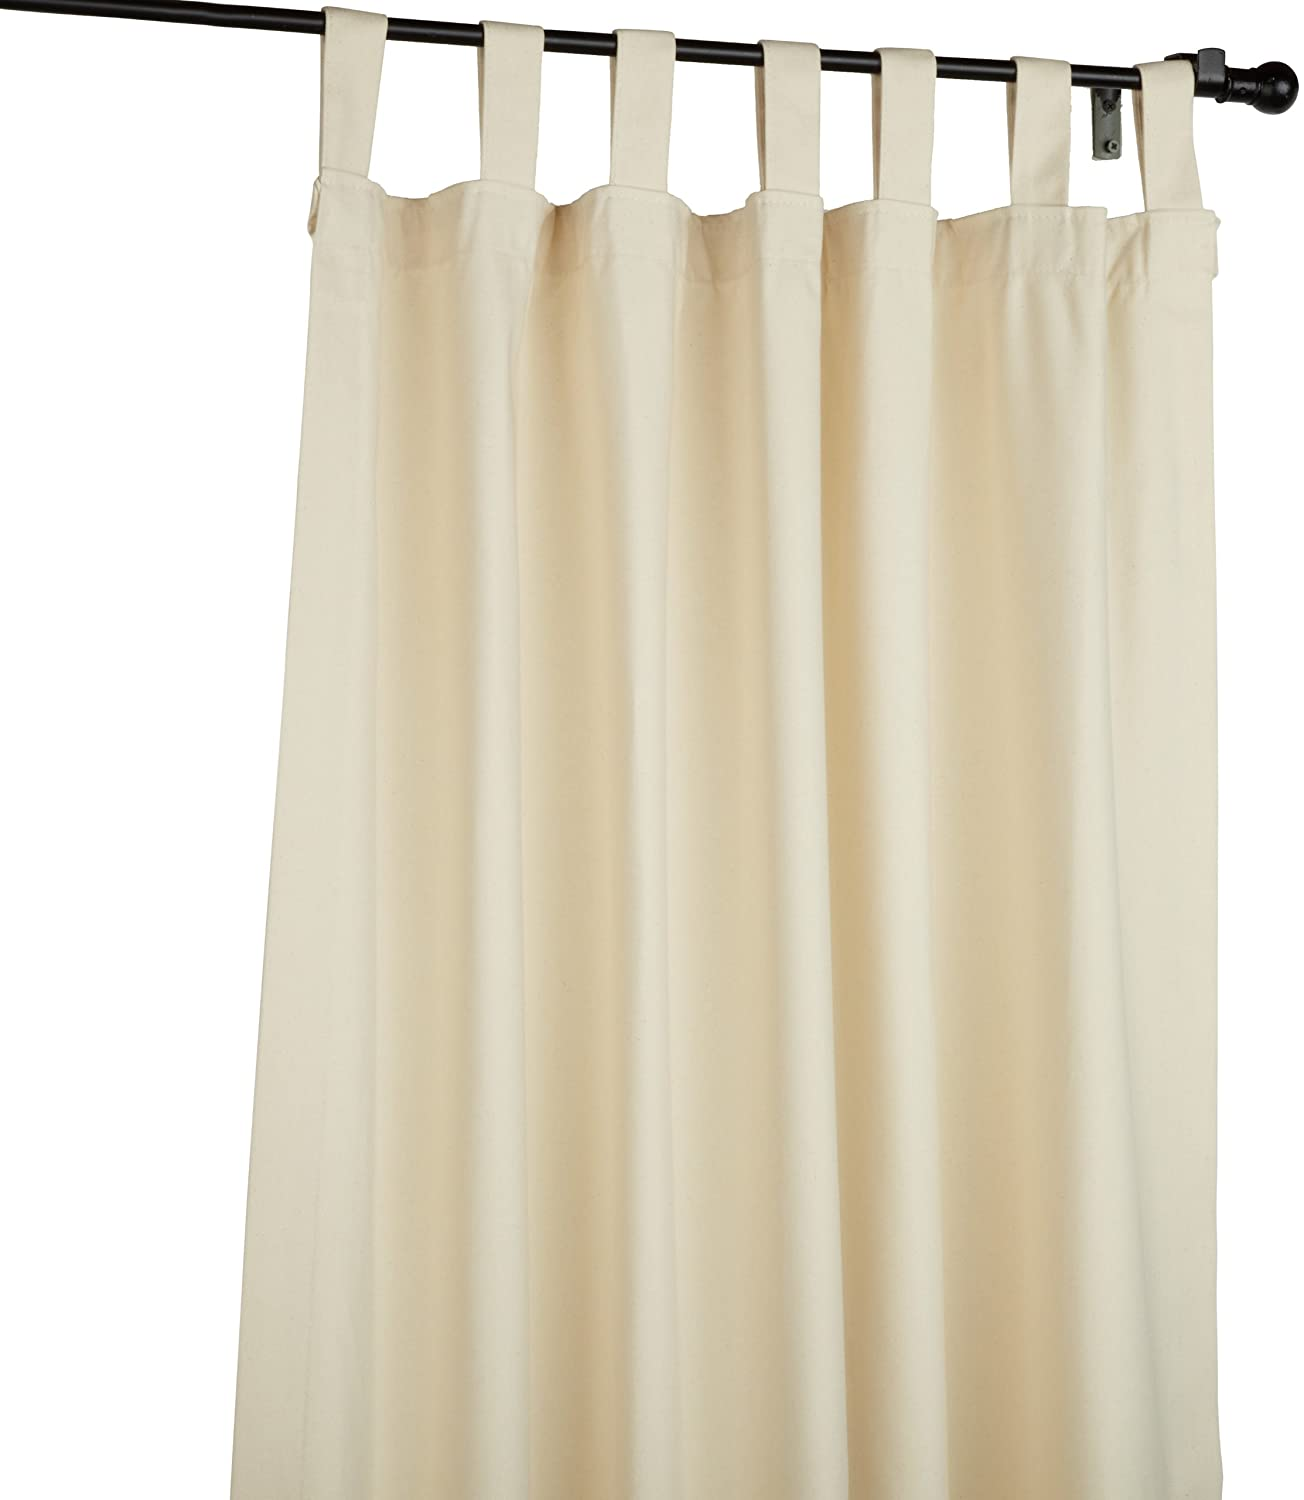 traverse pinch hanging rod rods y on curtains curtain for pleat drapes